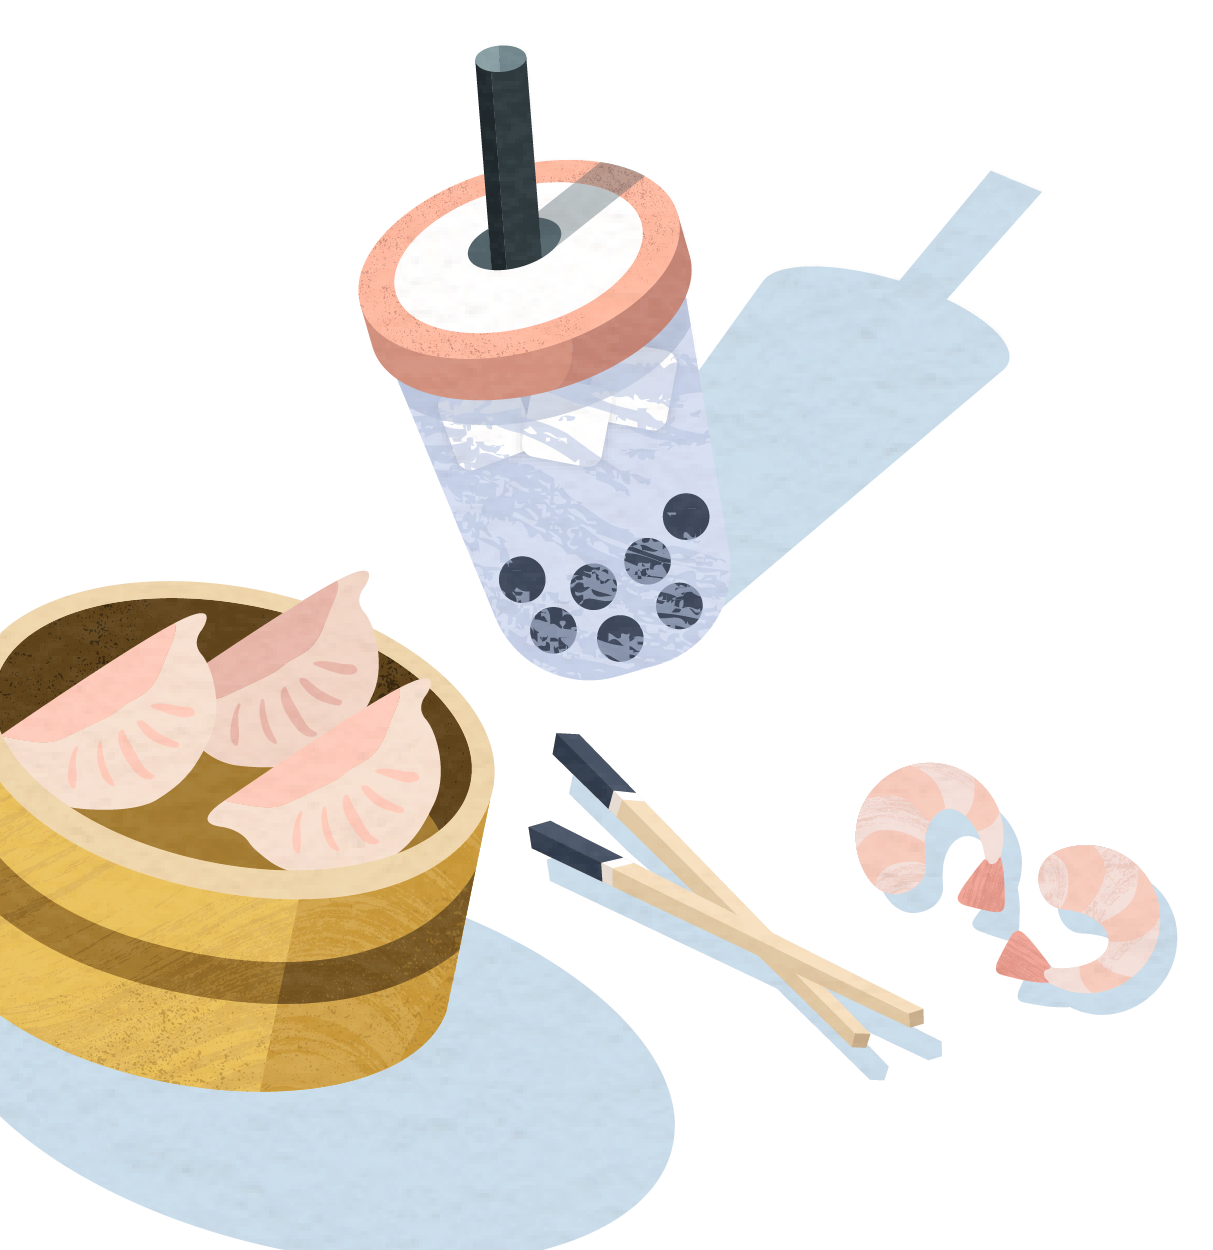 Illustration of various foods